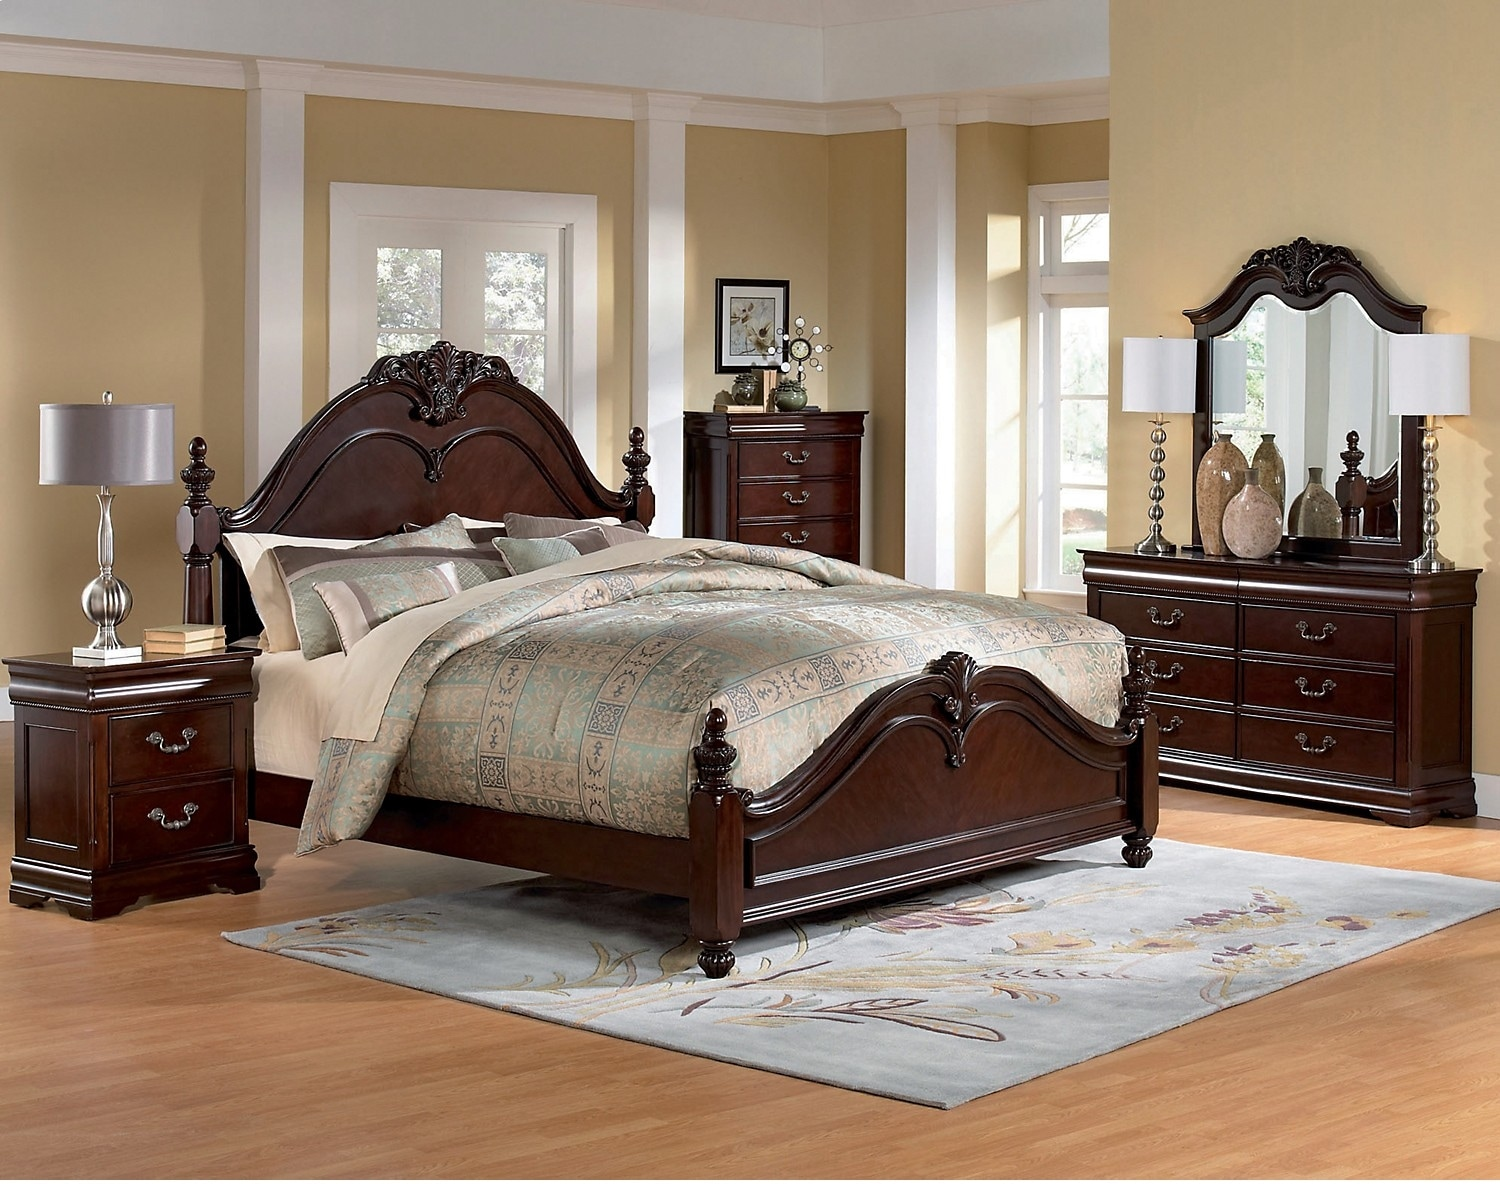 Westchester 6 piece queen bedroom set the brick for Furniture bedroom furniture